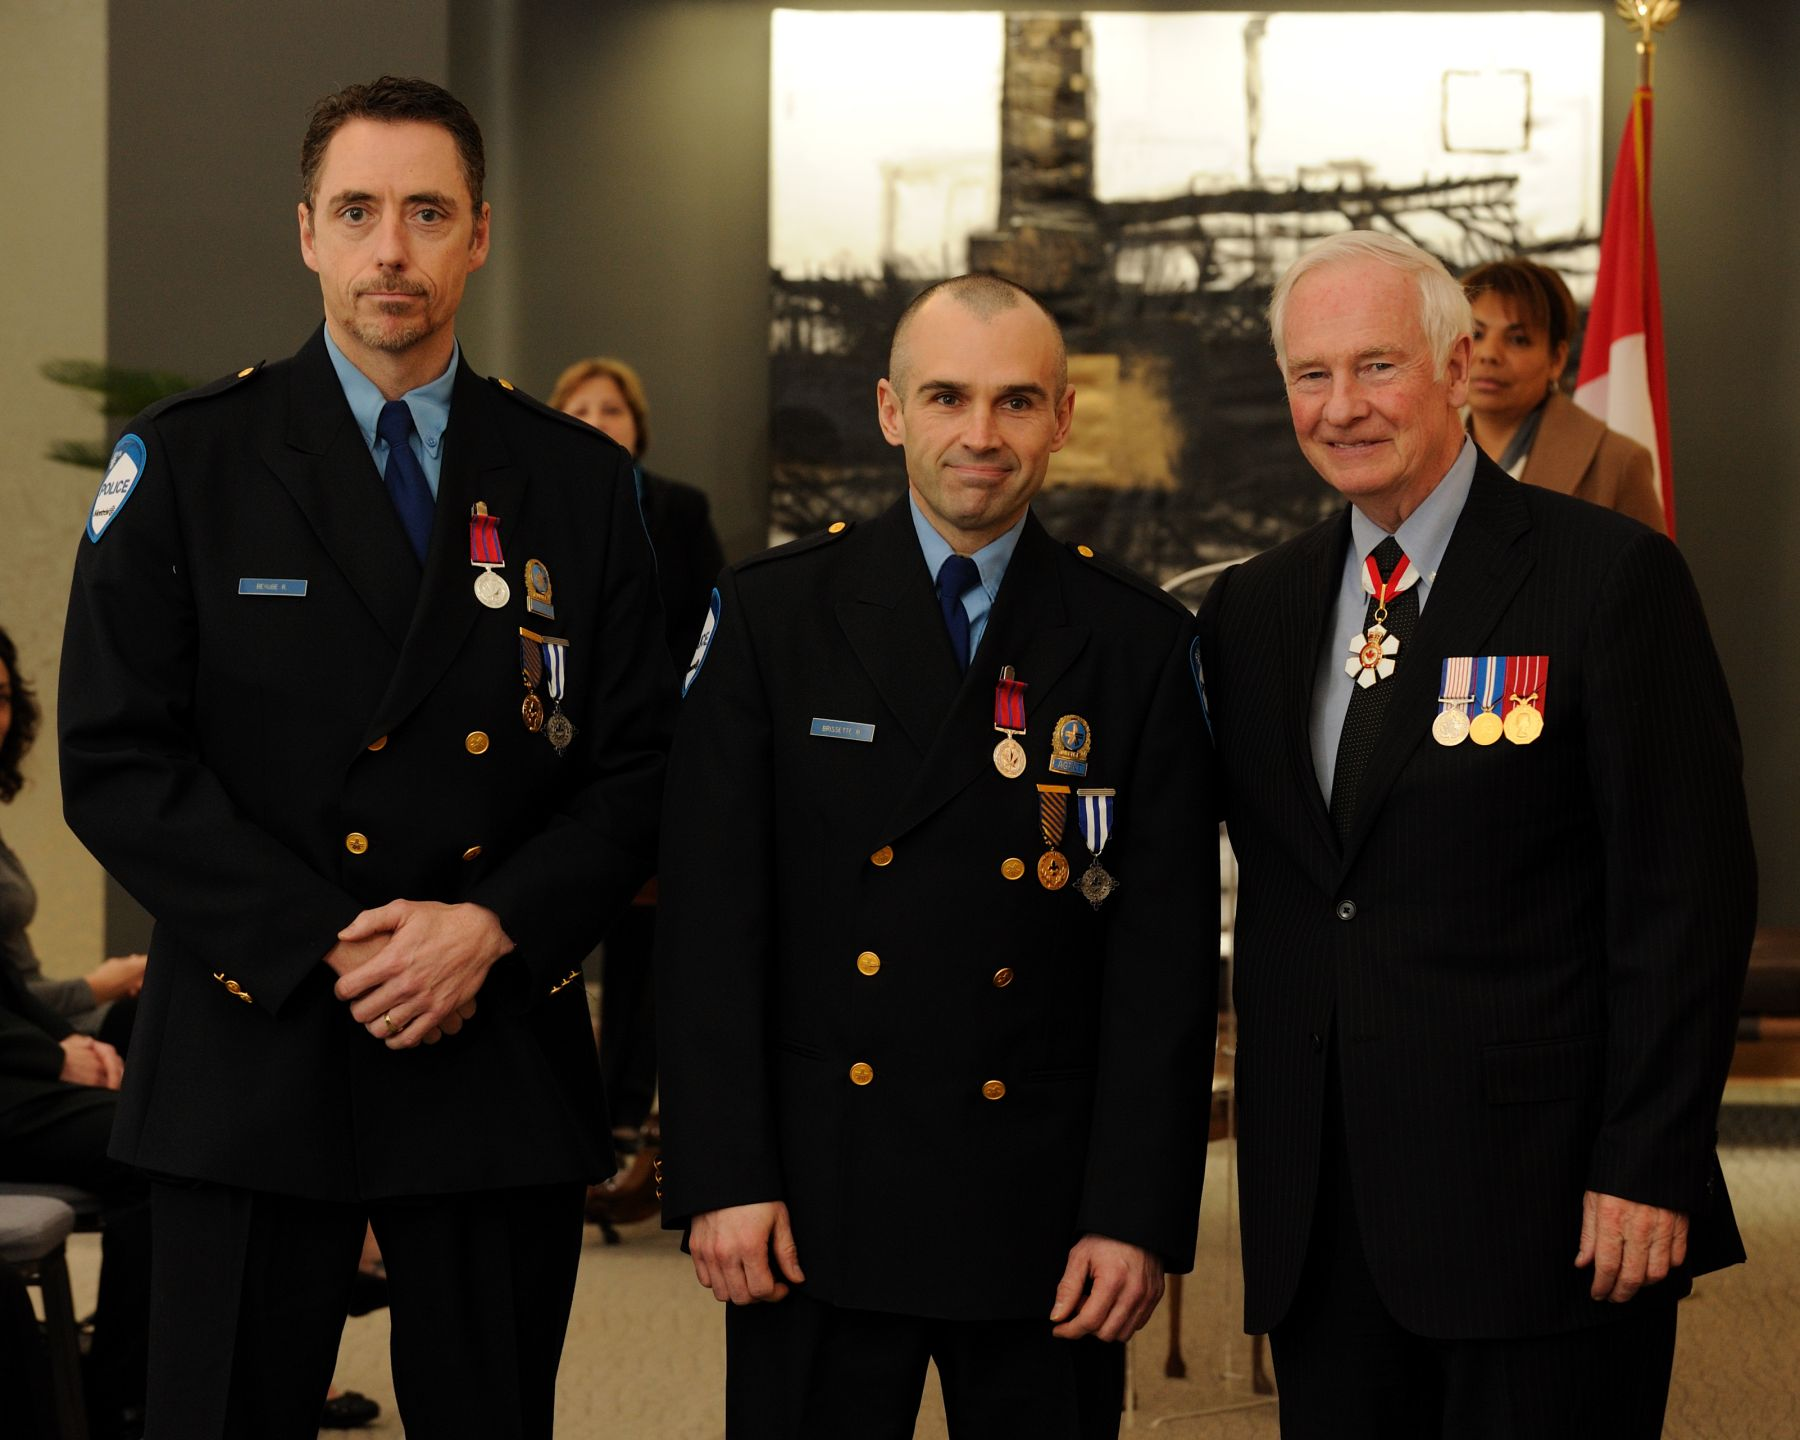 On December 18, 2008, City of Montréal police constables Robert Bérubé, M.B. and Benoit Brissette, M.B., rescued a number of residents from a burning building. The constables had been patrolling the area when they heard an explosion and saw the stone facade of a three-storey building collapse onto the street. The first floor was completely engulfed and the flames were spreading quickly to the apartments above. Without hesitation, the constables ran in as the thick, dark smoke filled the hallway, making it difficult to see and breathe. After evacuating several occupants from the first and second floor apartments, the constables donned gas masks and continued to evacuate all the tenants on the top floor. All residents were eventually brought to safety.